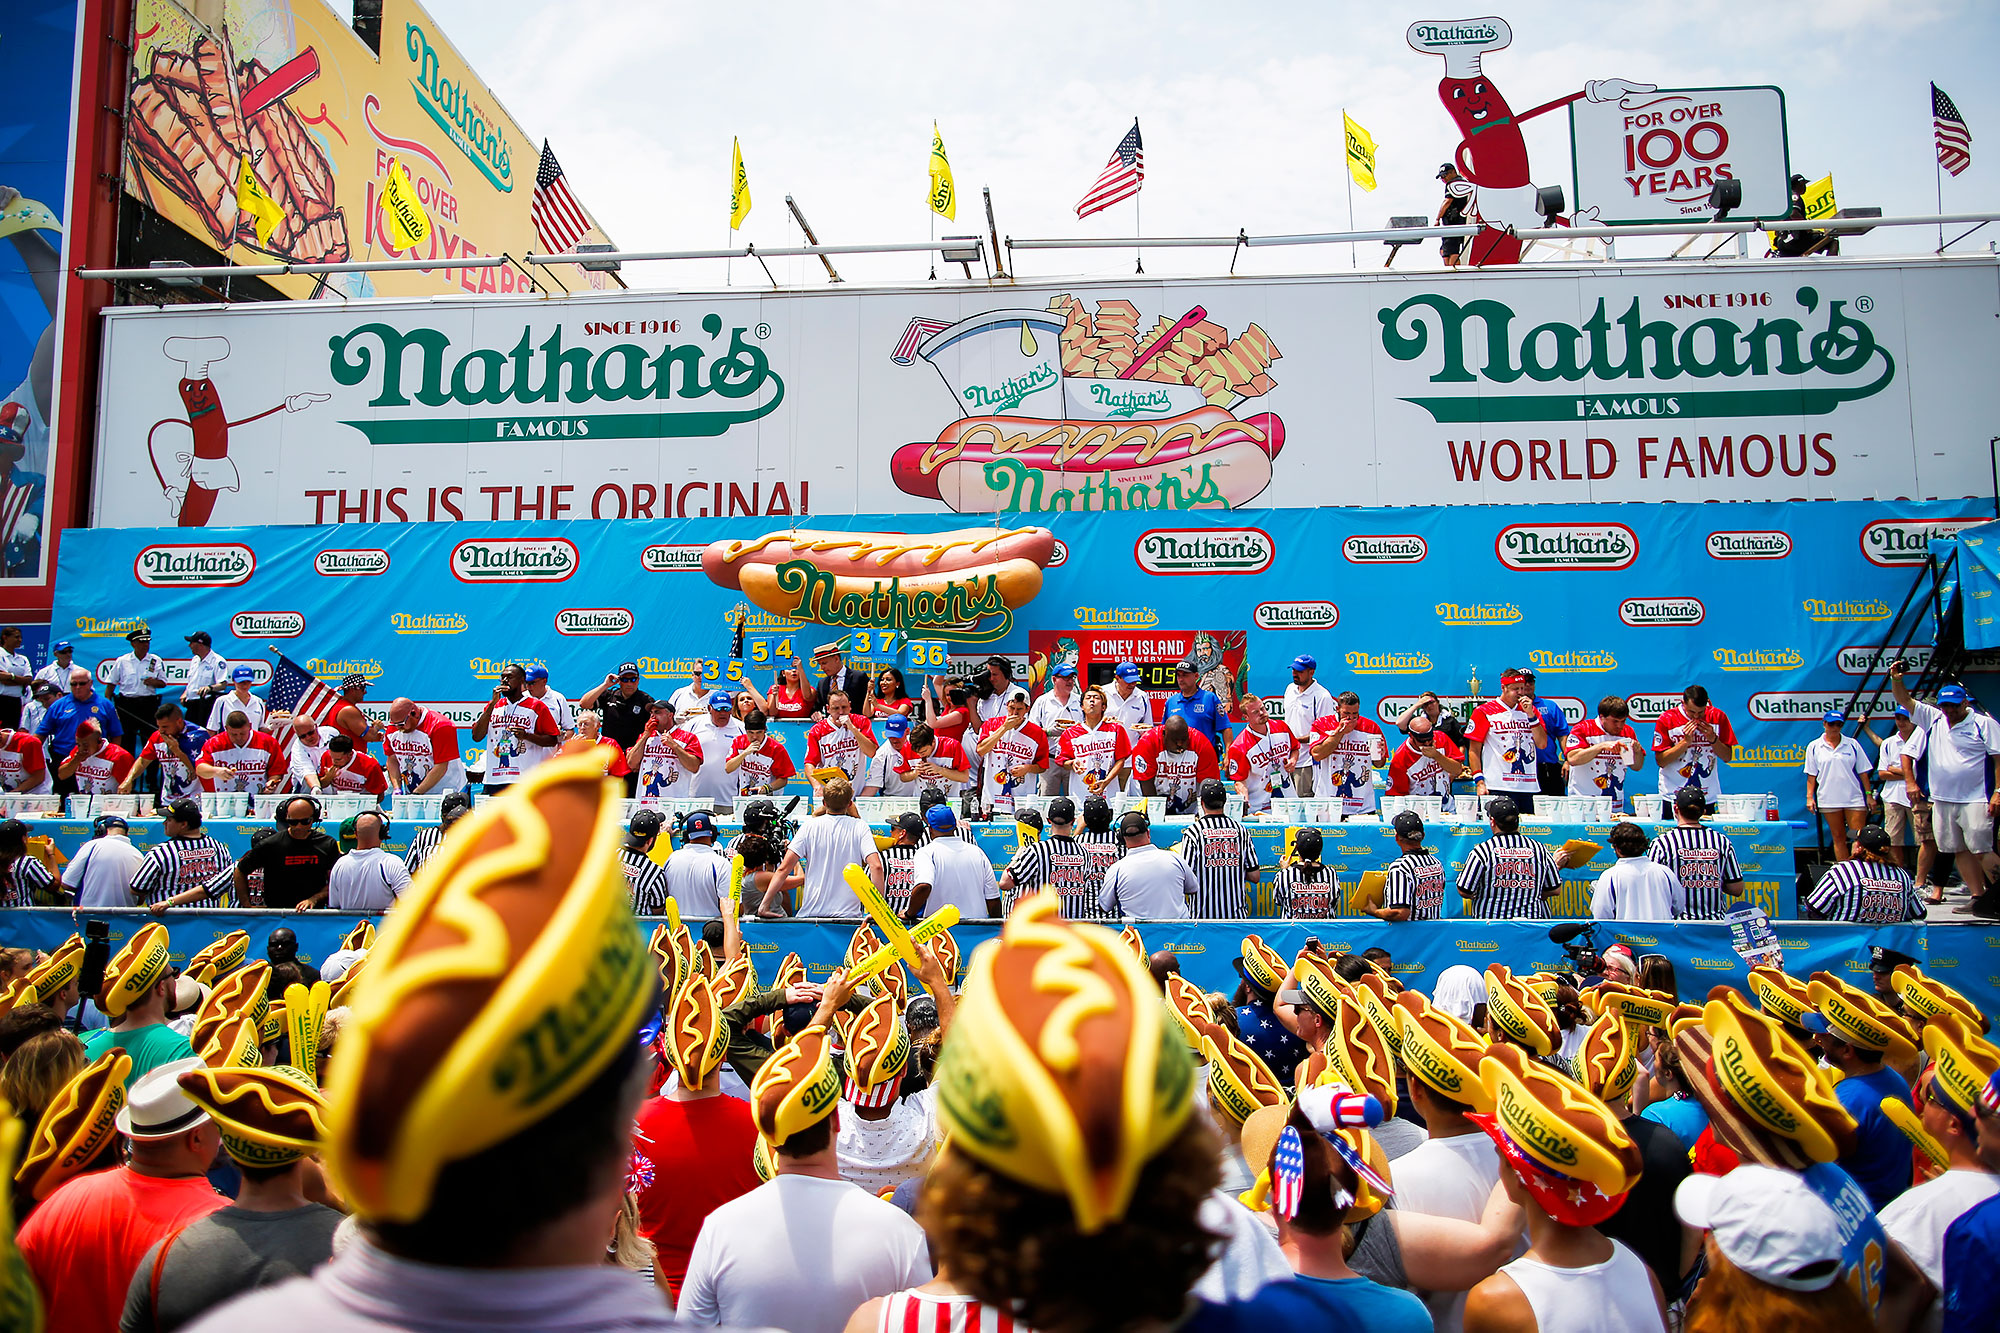 People compete during the annual Nathan's Hot Dog Eating Contest